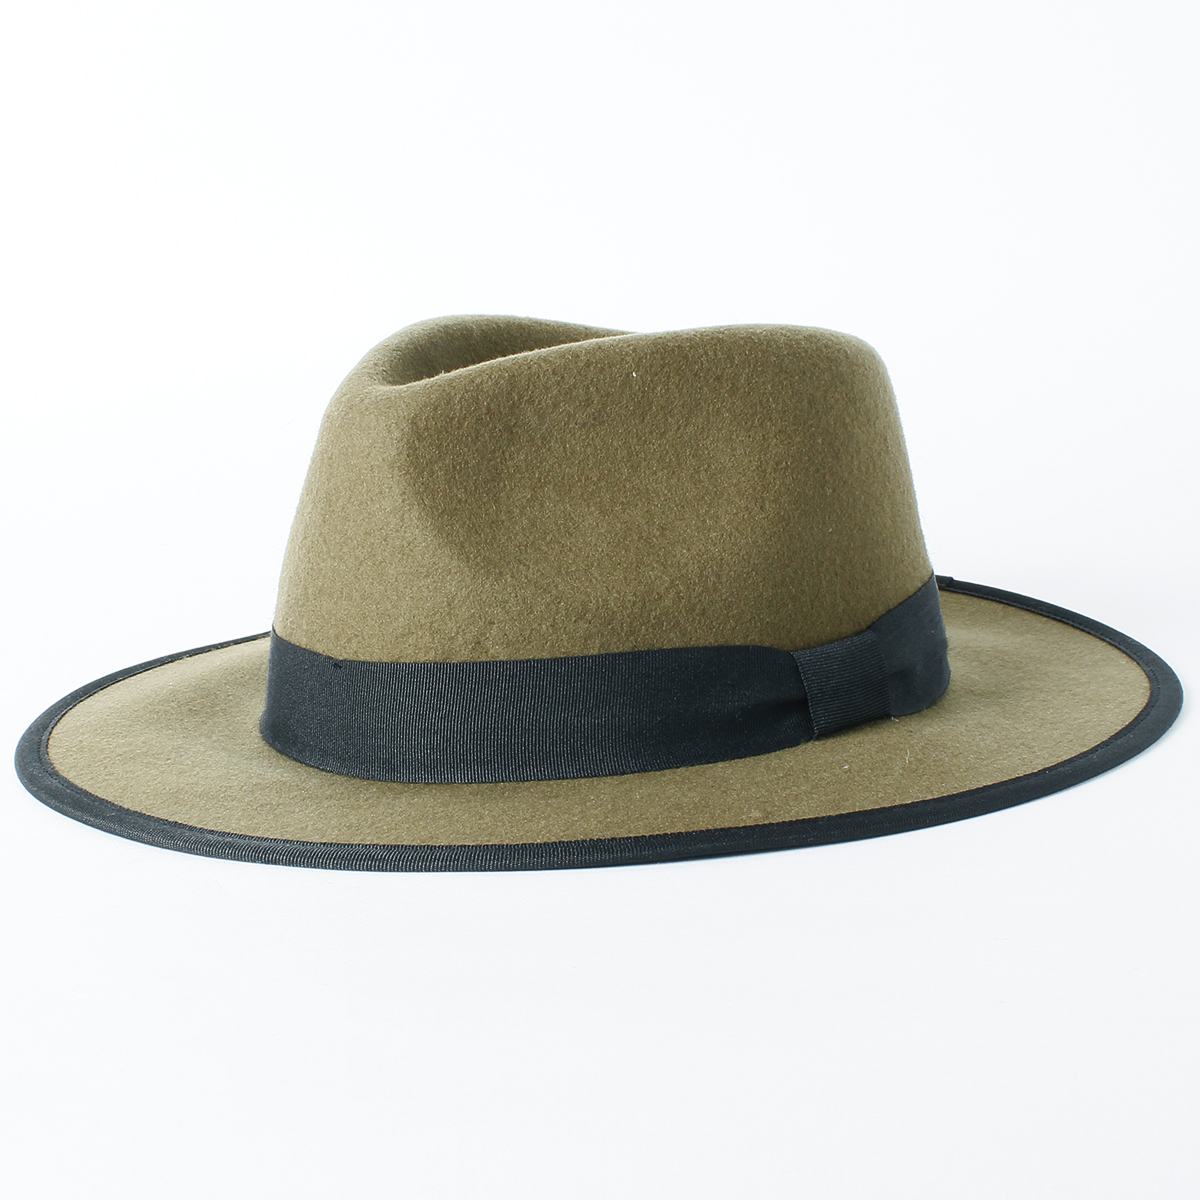 Tuba wide felt Hat [wide brim hat, FELT, hat, women's and men's, wool, target and store, fashionable and fashion, simple, gentleman Hat /RIVER UP ( riverup )-Wide Brim Felt Hat [BASIQUENTI]